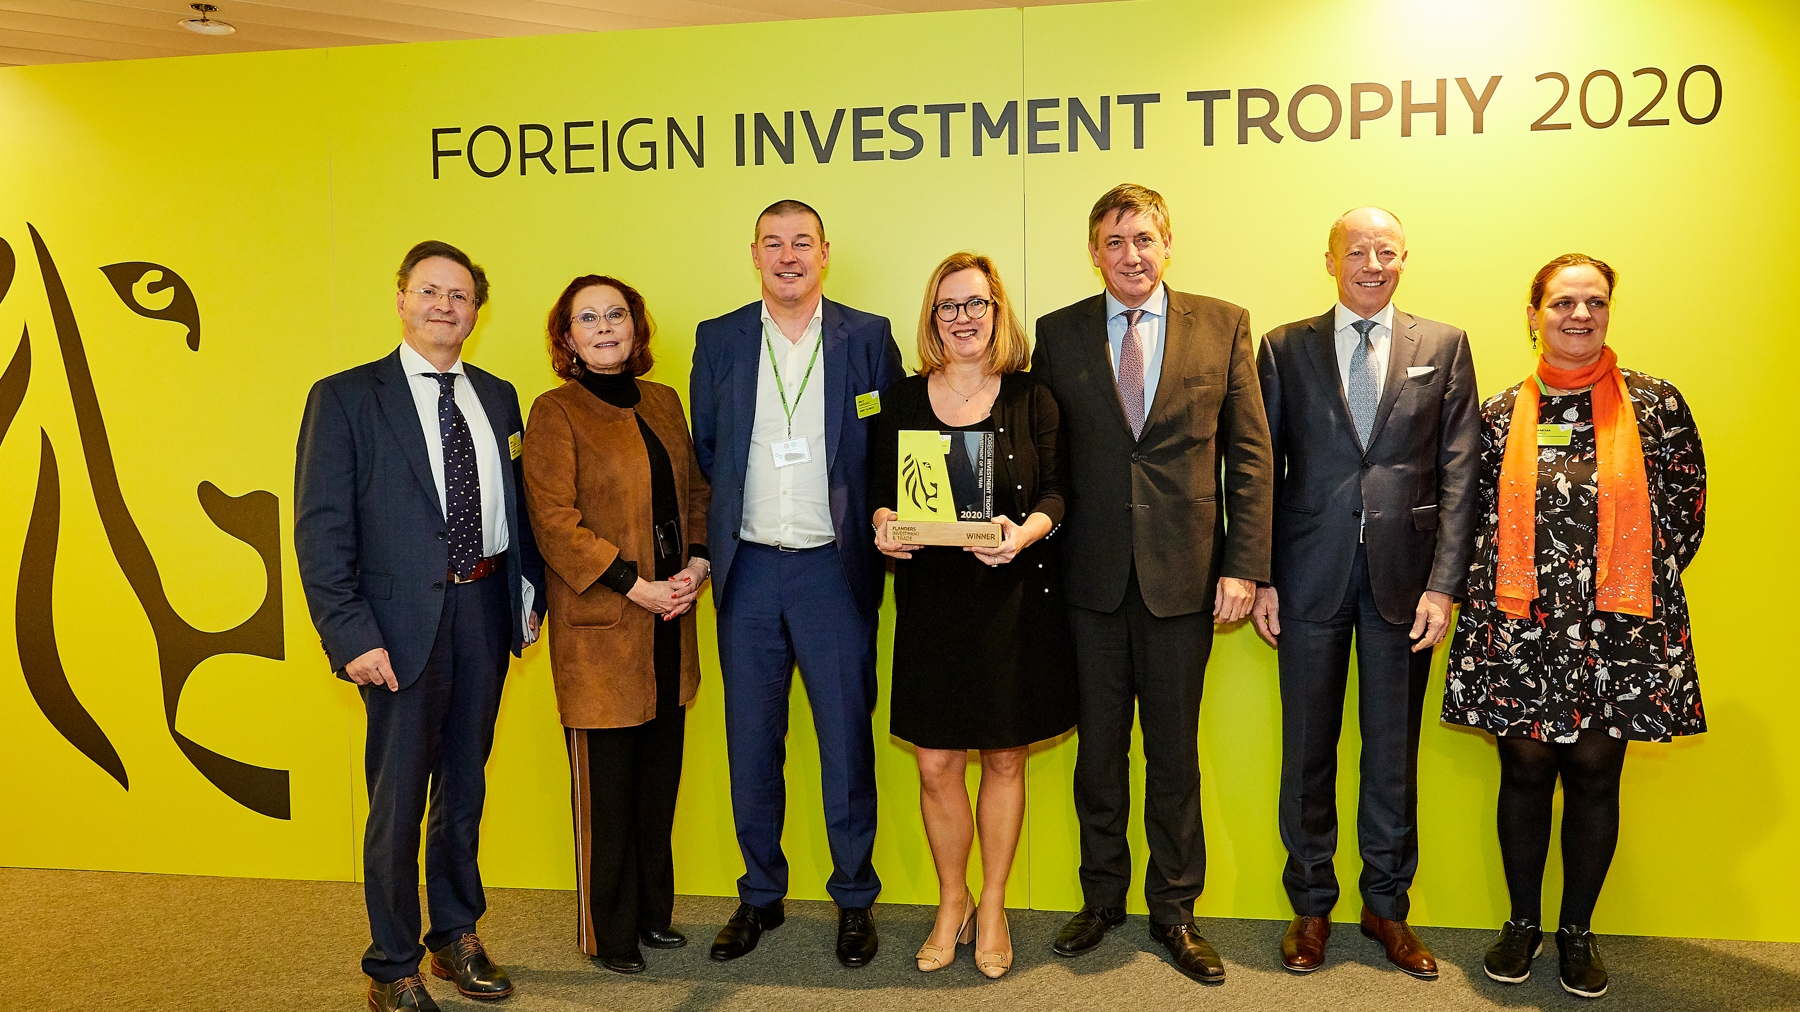 Foreign investment trophy 2020